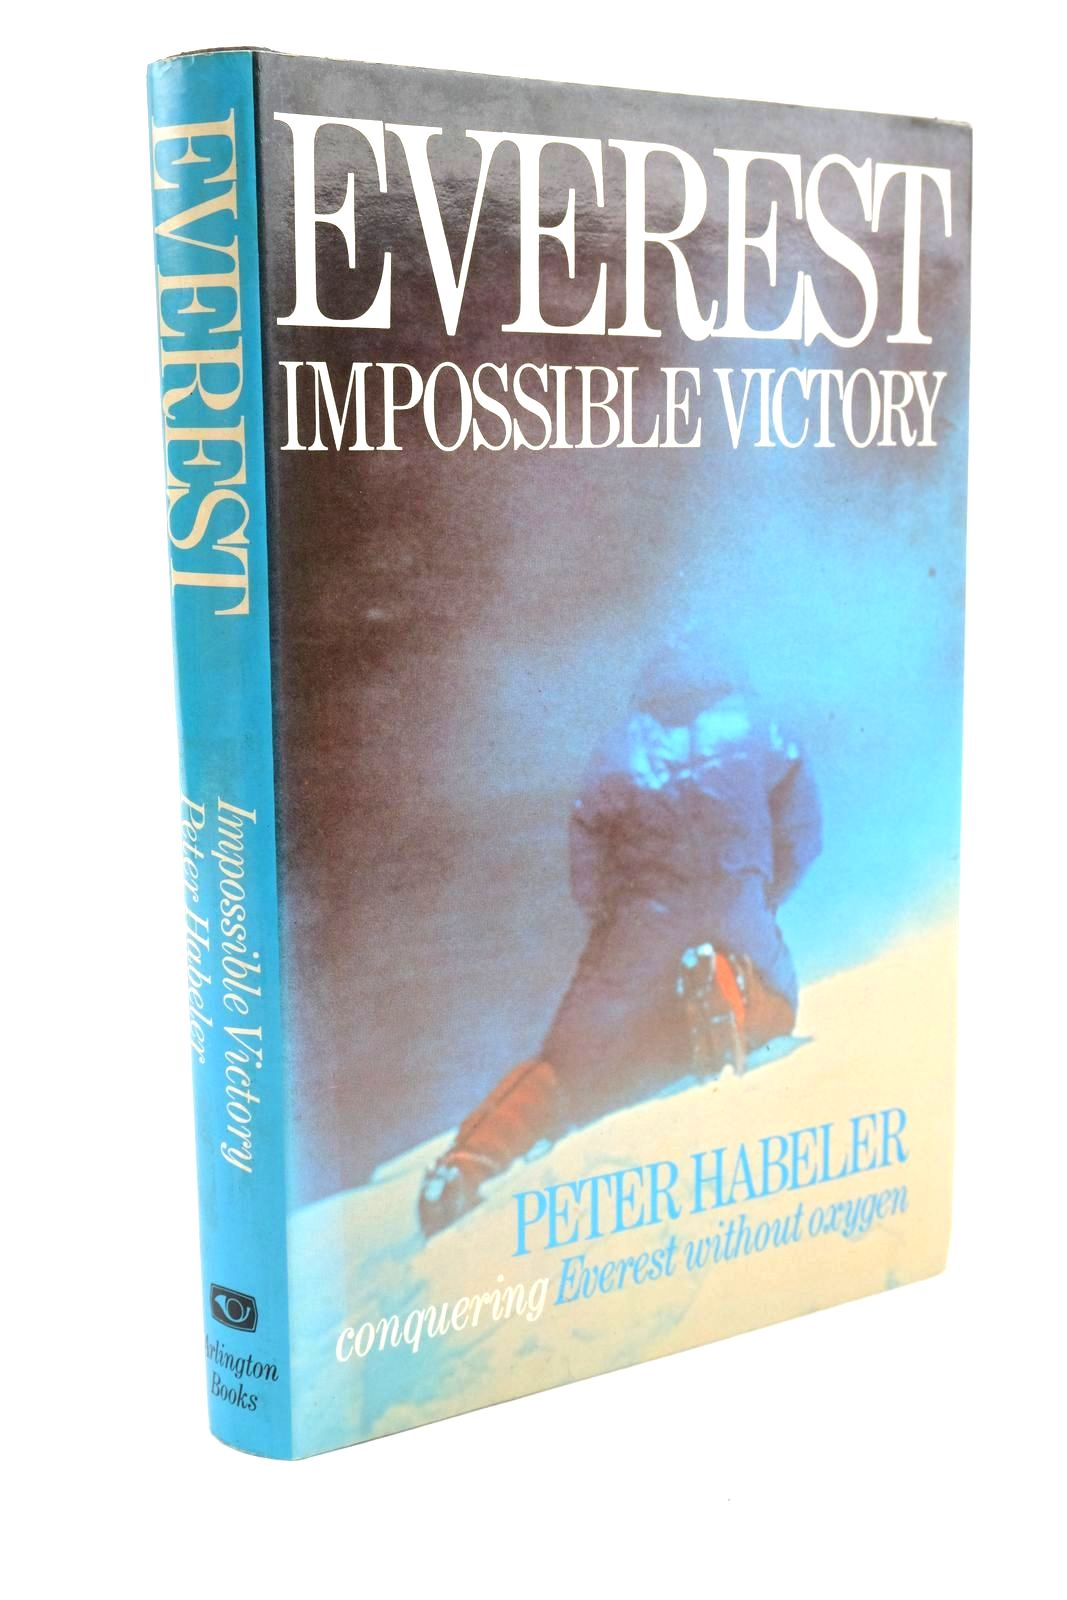 Photo of EVEREST IMPOSSIBLE VICTORY written by Habeler, Peter published by Arlington Books (STOCK CODE: 1321479)  for sale by Stella & Rose's Books